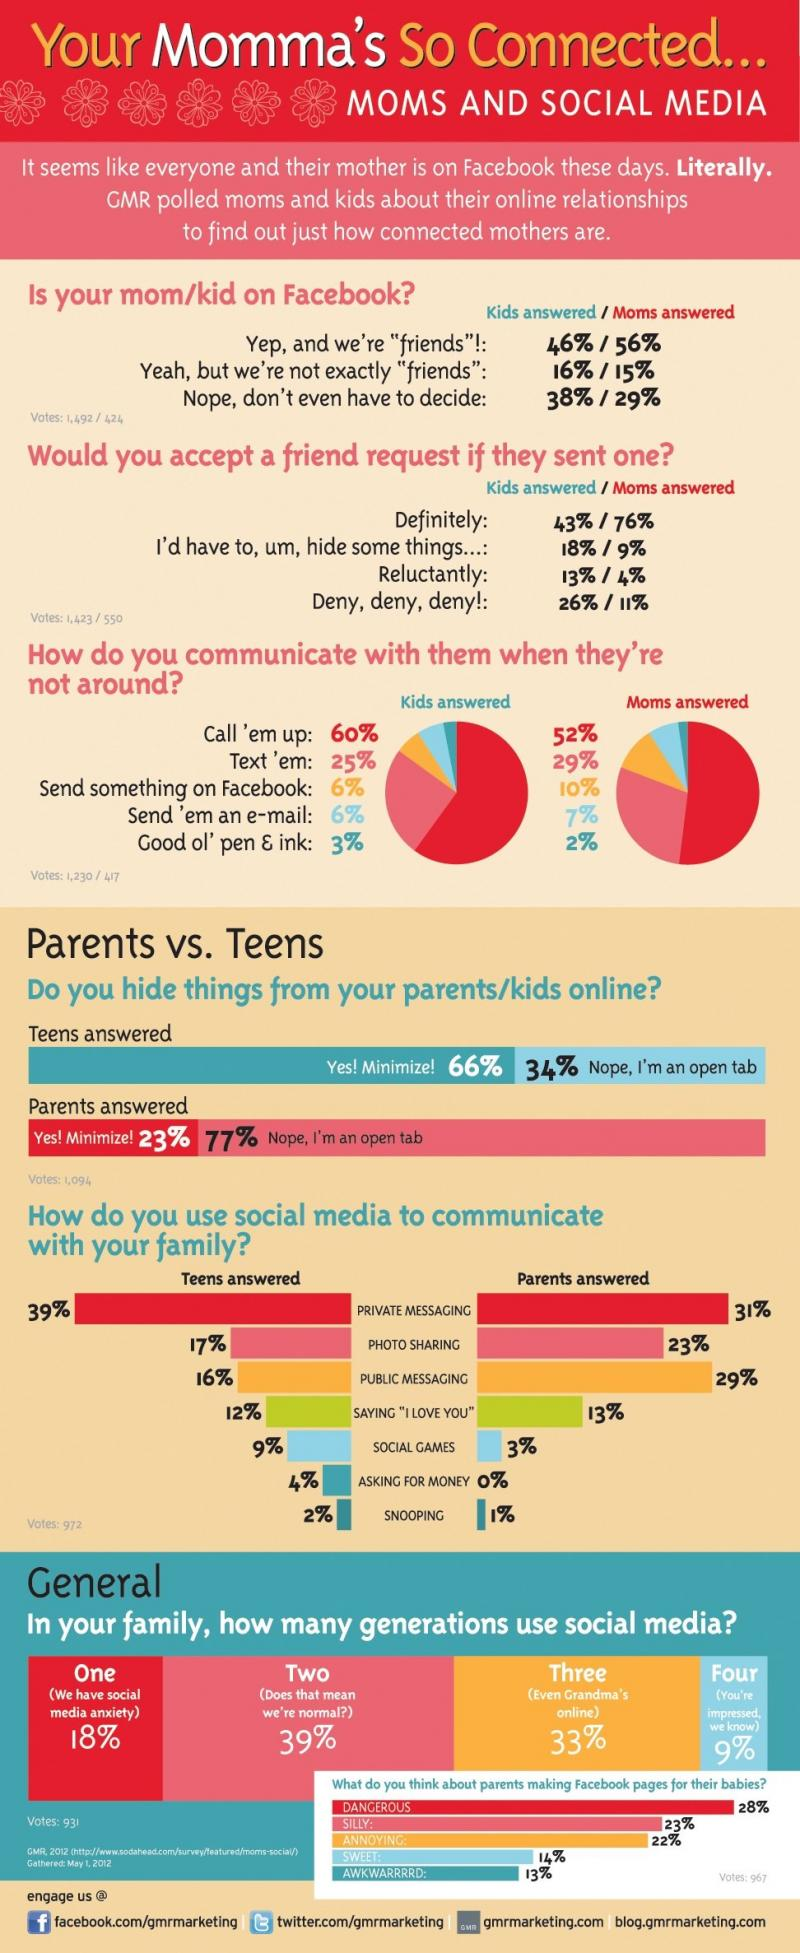 mothers day social media across generations